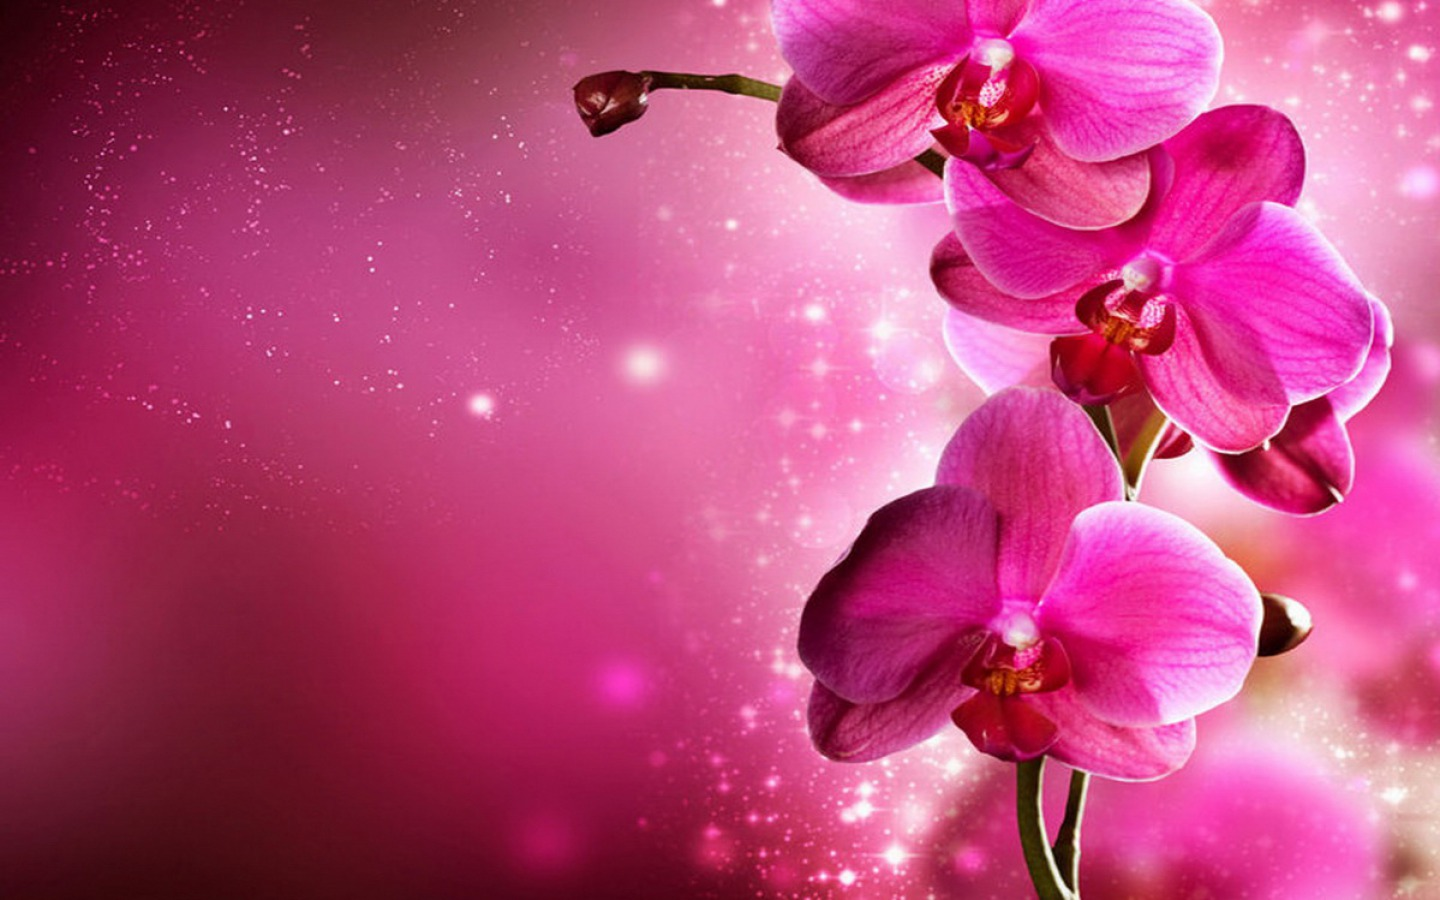 orchid wallpapers backgrounds images - photo #2